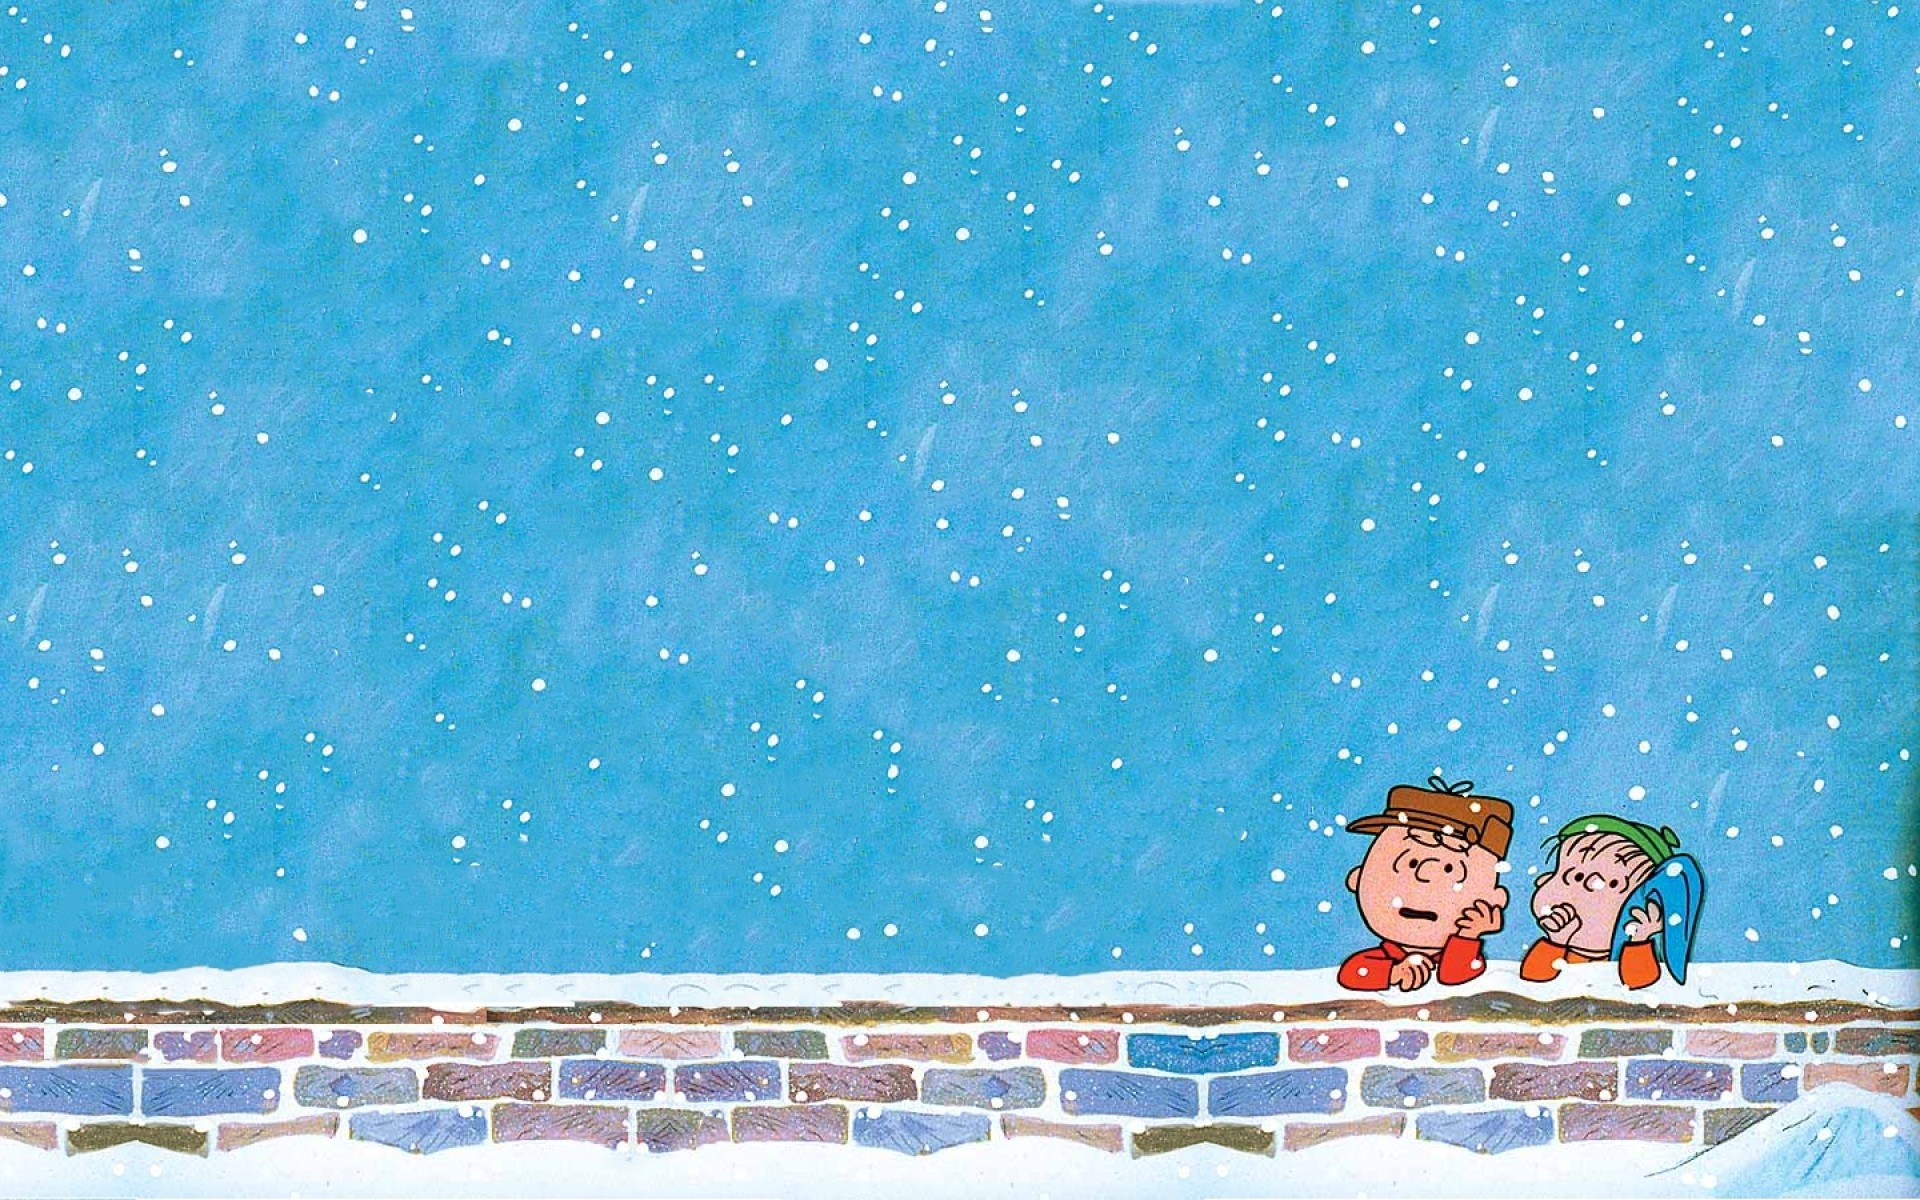 Snoopy Wallpaper Iphone 6 Charlie Brown Christmas Wallpaper 183 ① Download Free